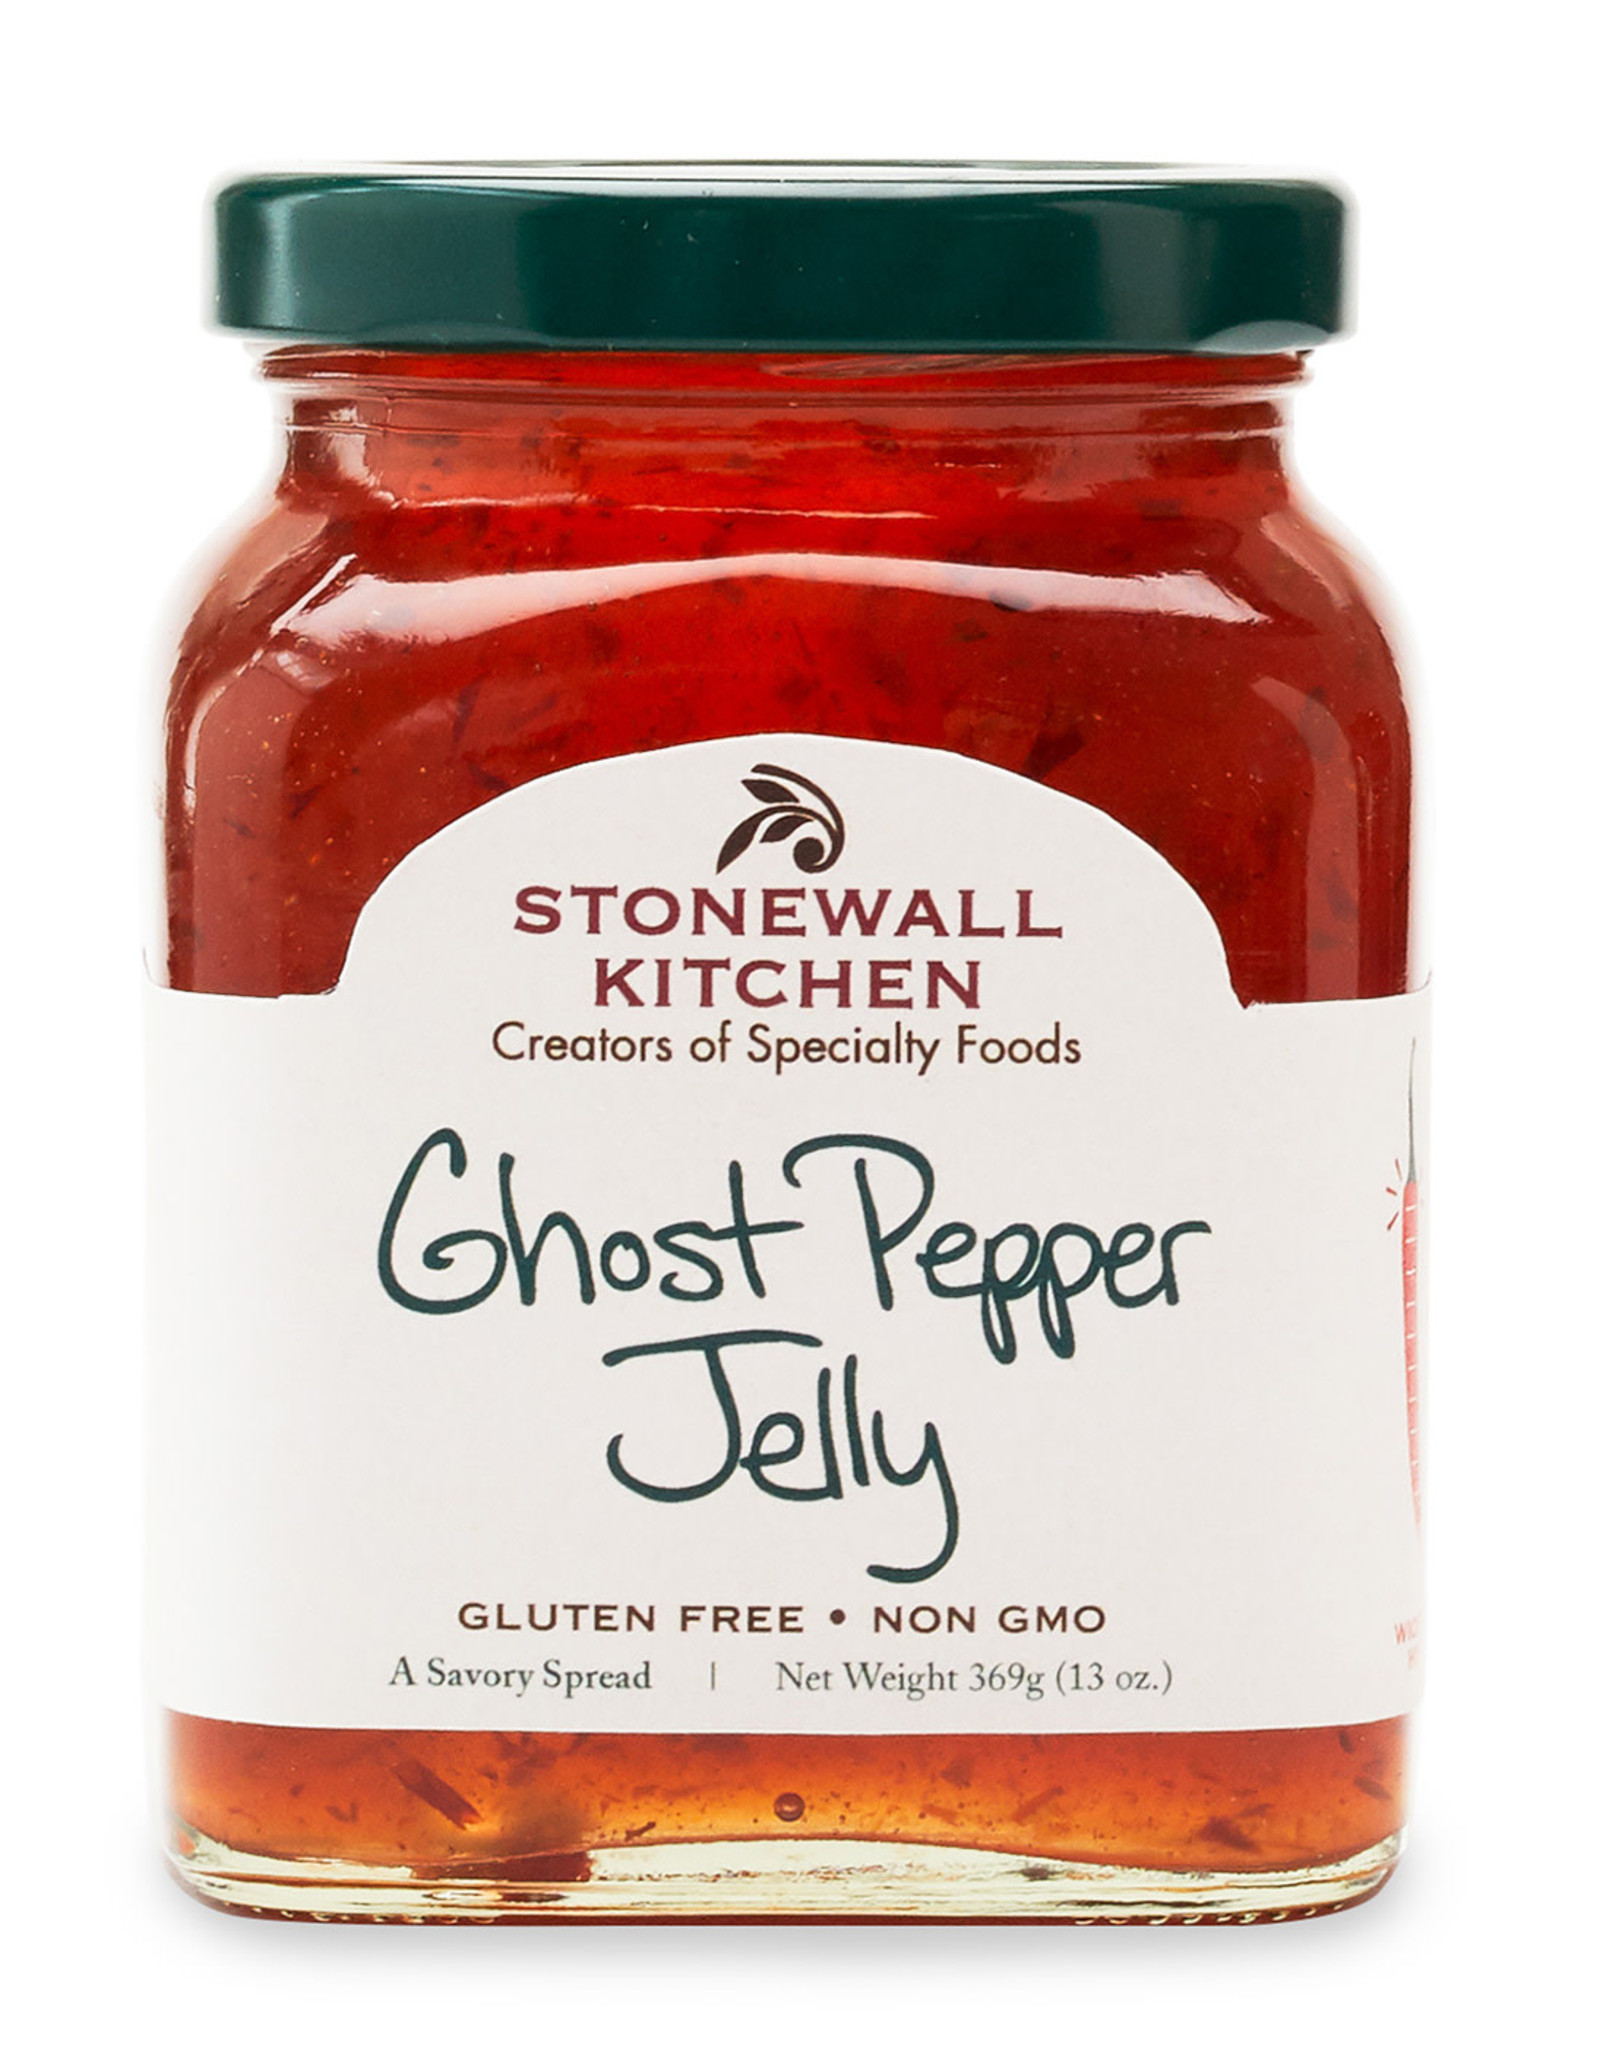 Stonewall Kitchen Ghost Pepper Jelly